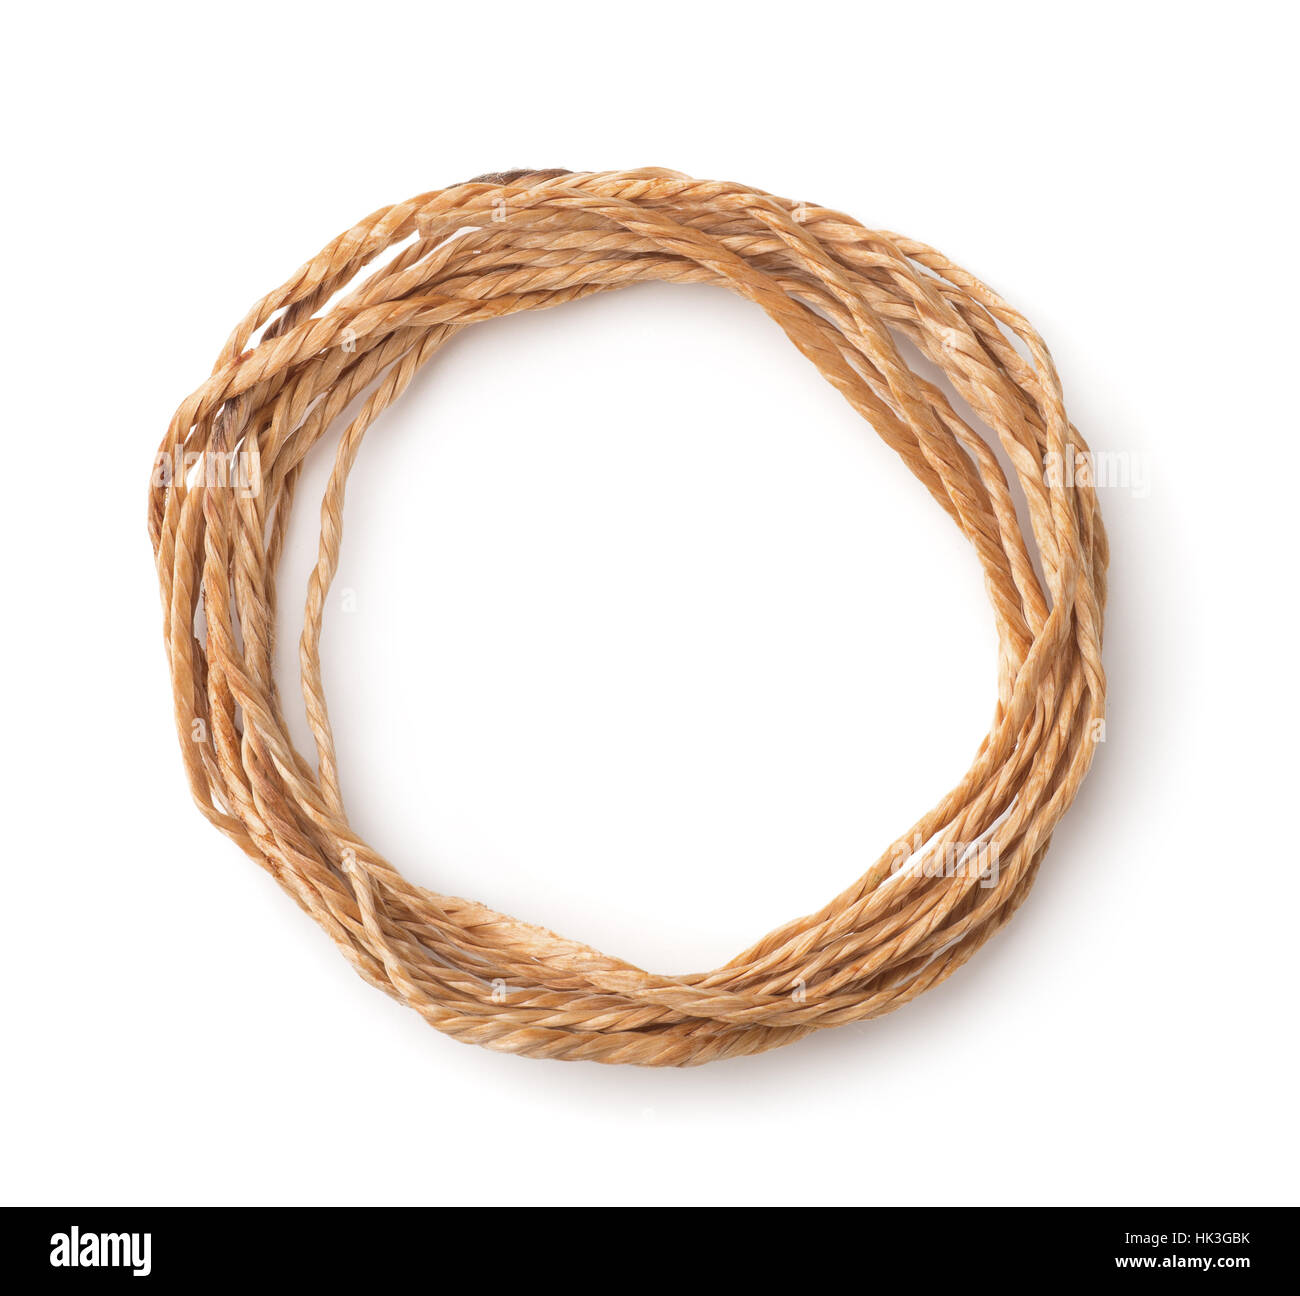 Top view of twine skein isolated on white - Stock Image